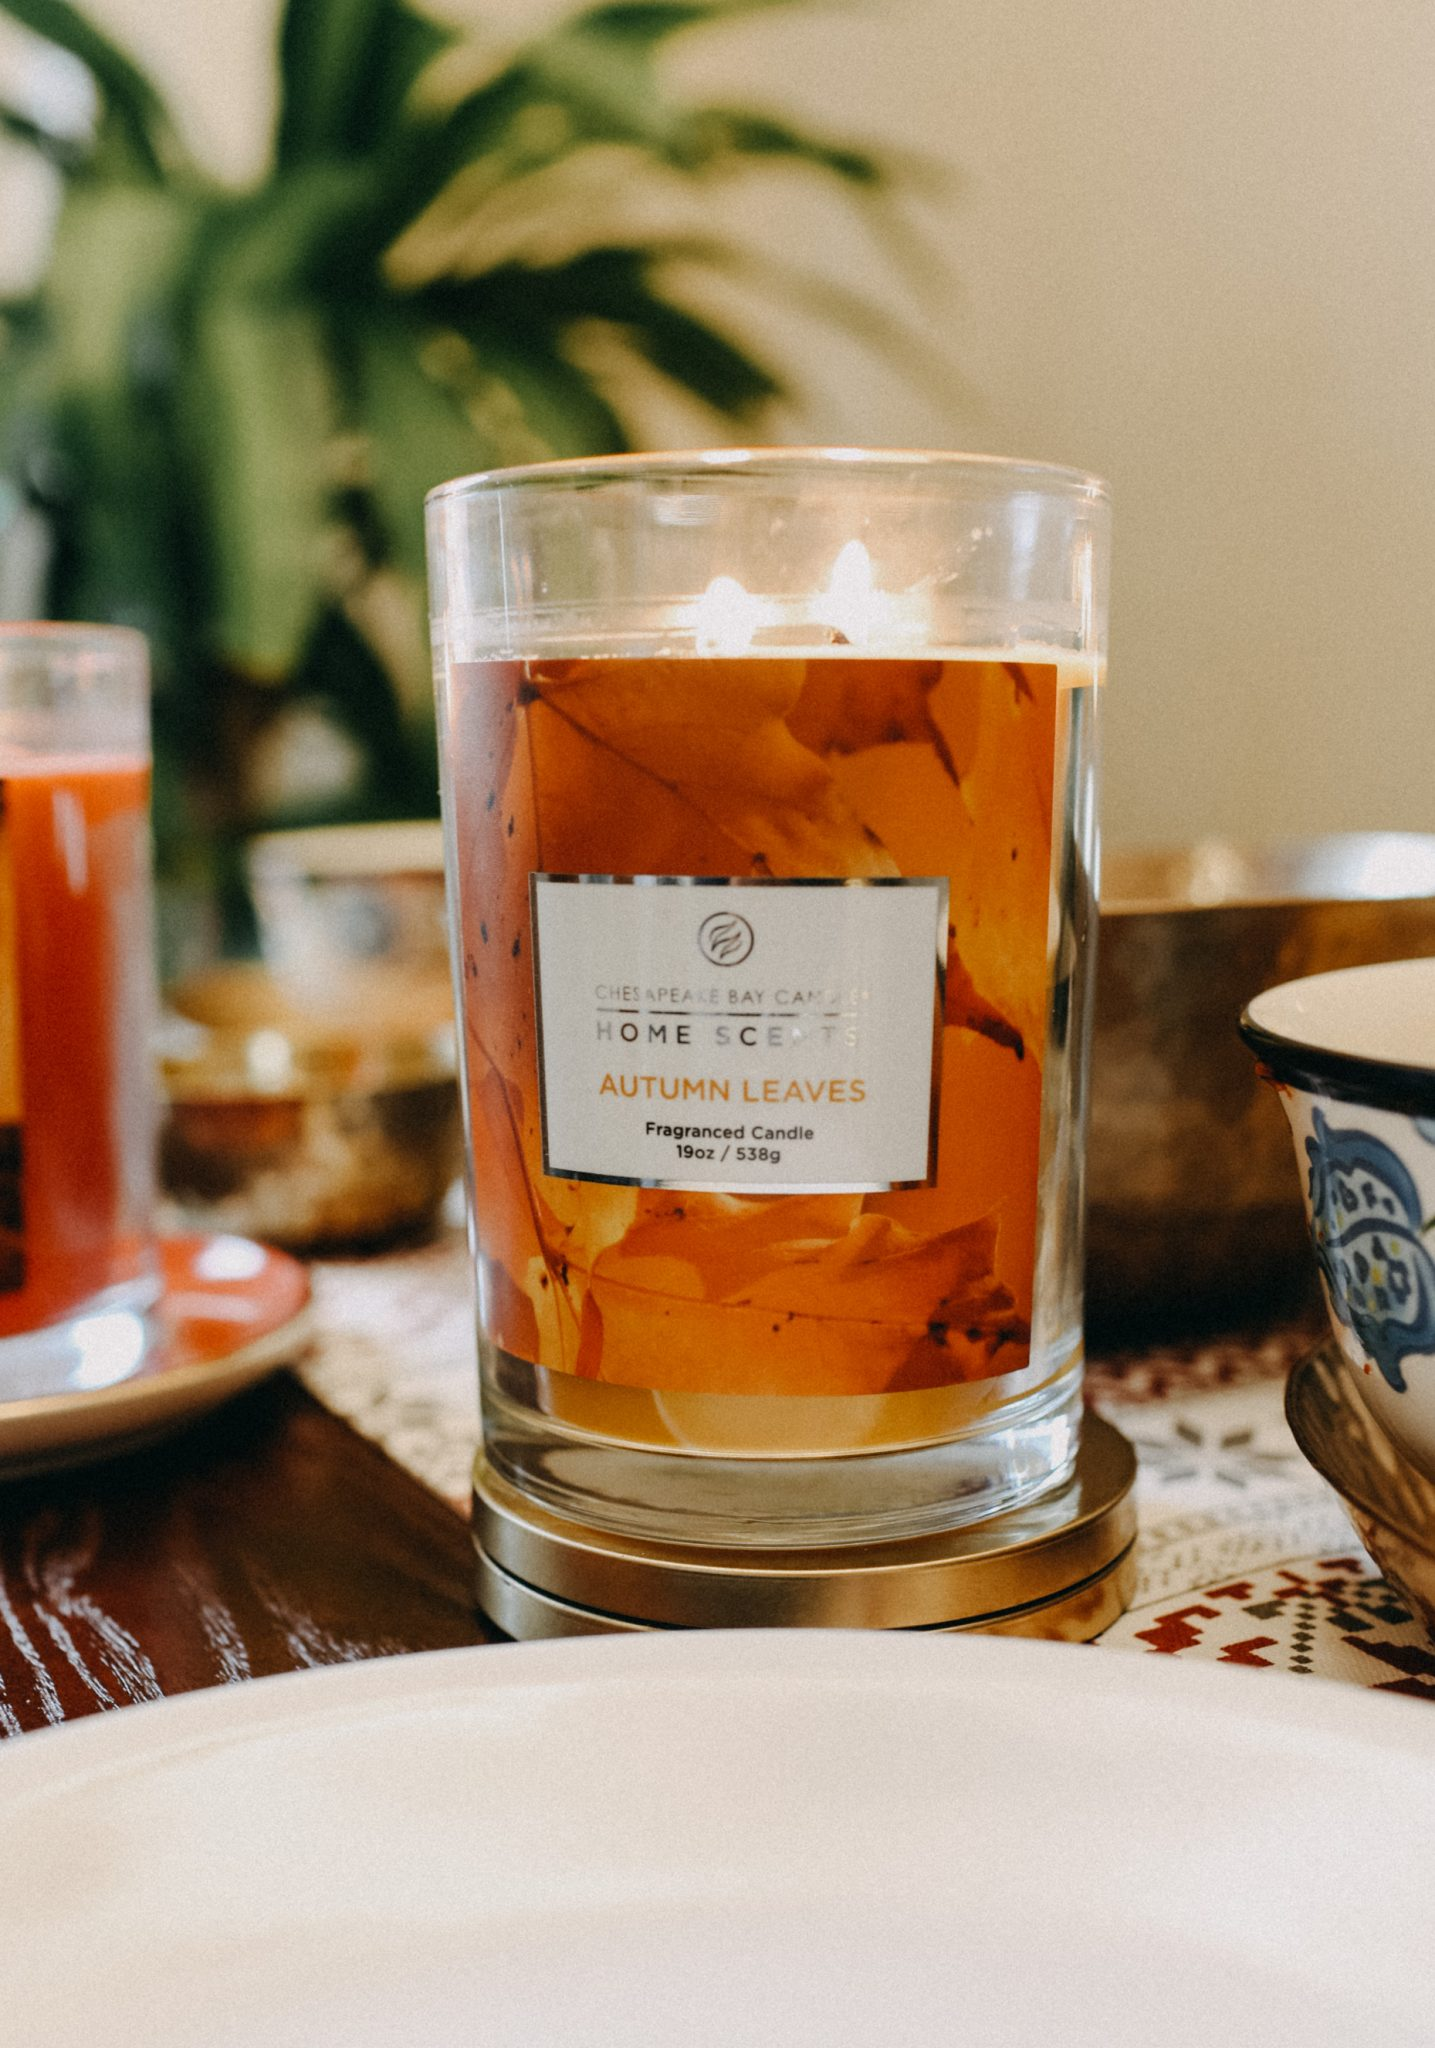 Chesapeake Bay Candles Home collection Autumn Leaves Scent